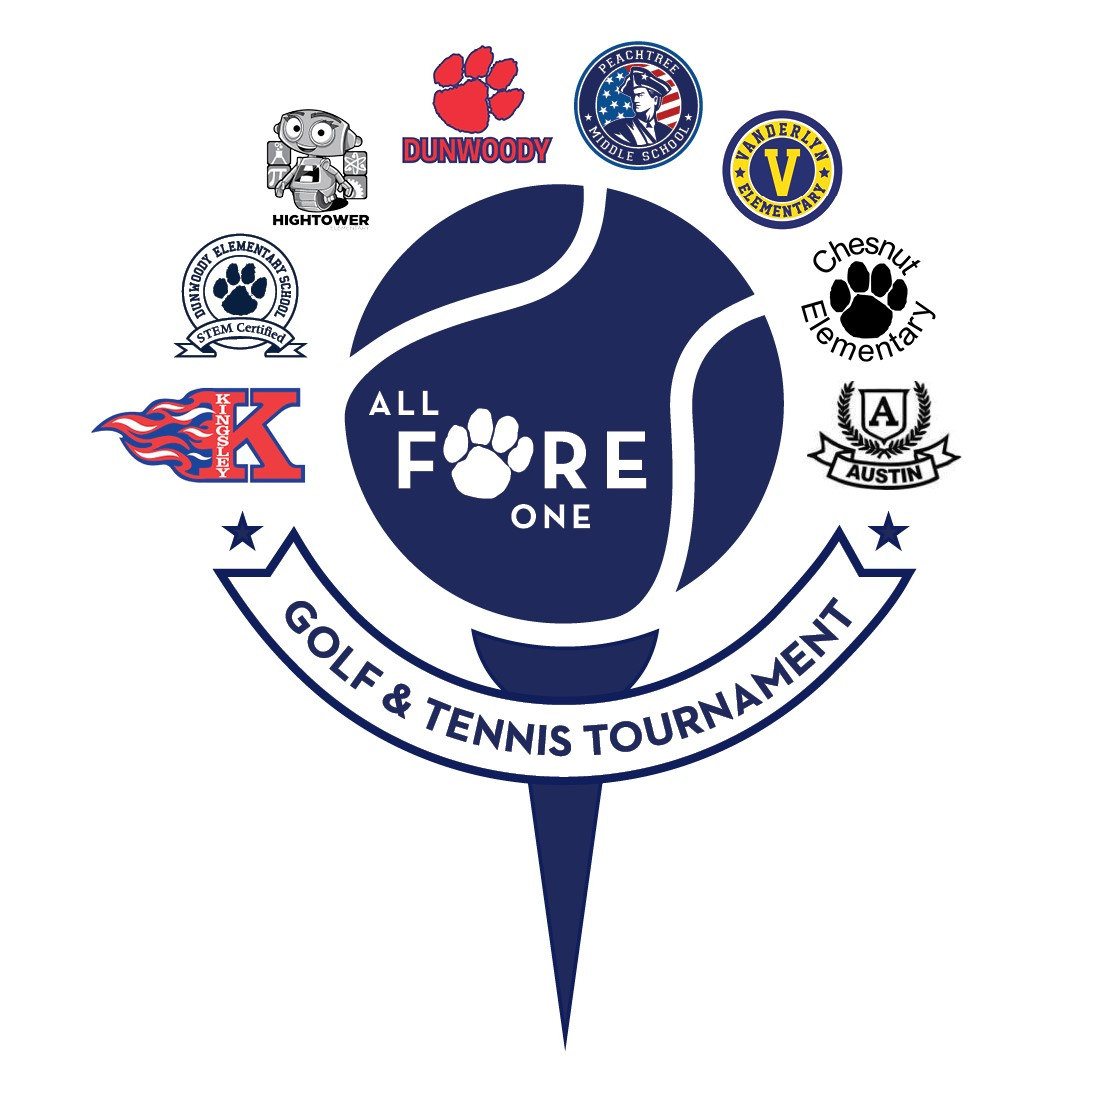 All Fore One Golf & Tennis Tournament - Default Image of Gold Sponsor